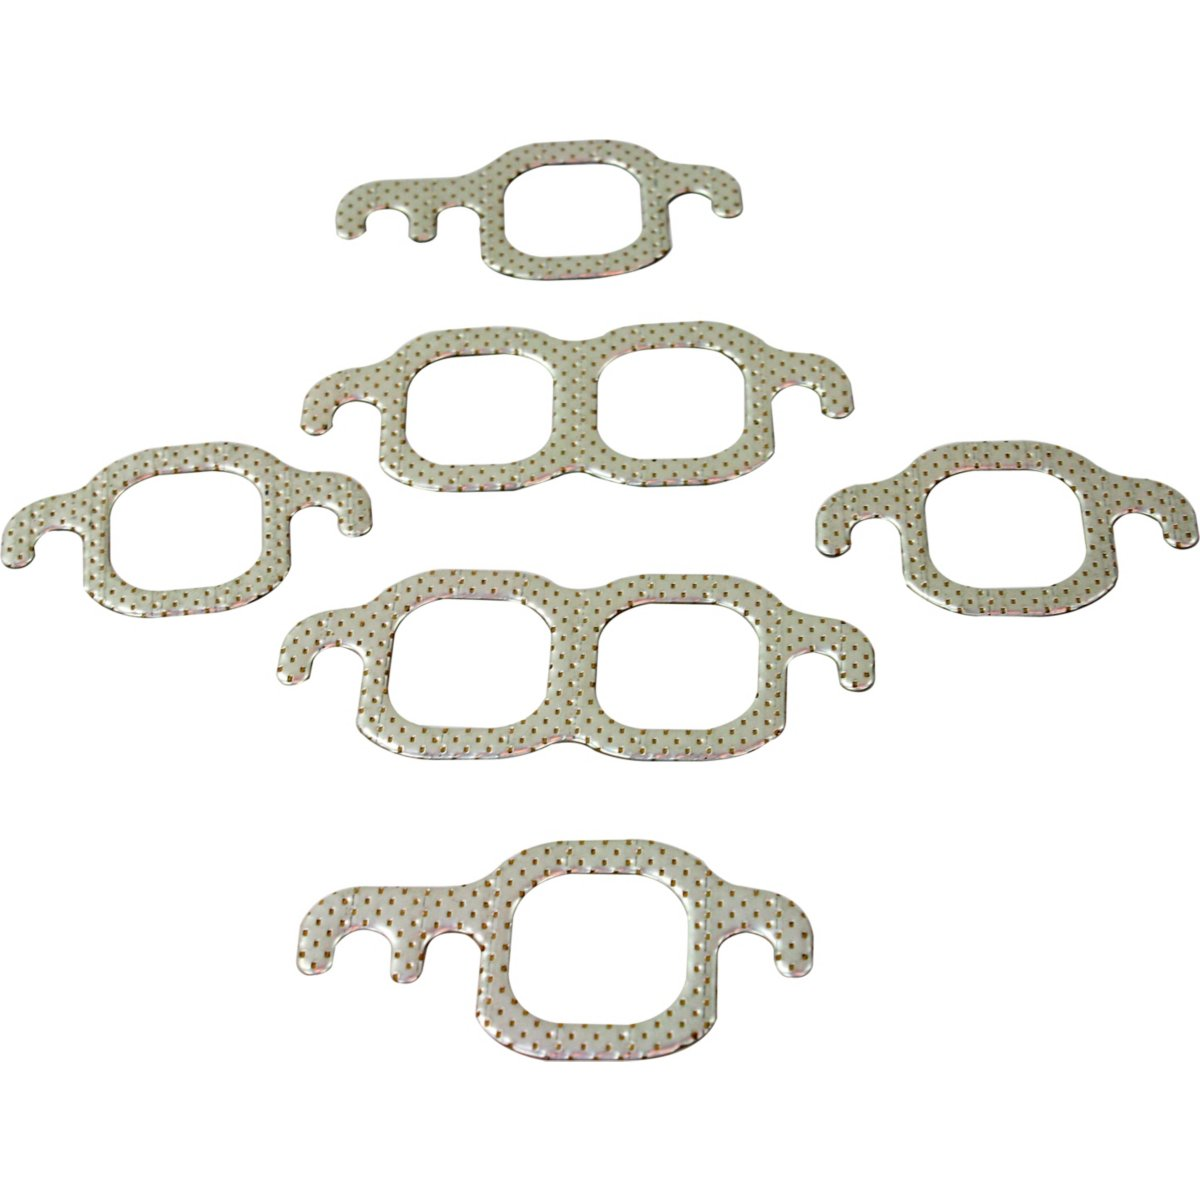 Felpro Exhaust Manifold Gaskets Set of 6 New for Olds SaVana MS9275B